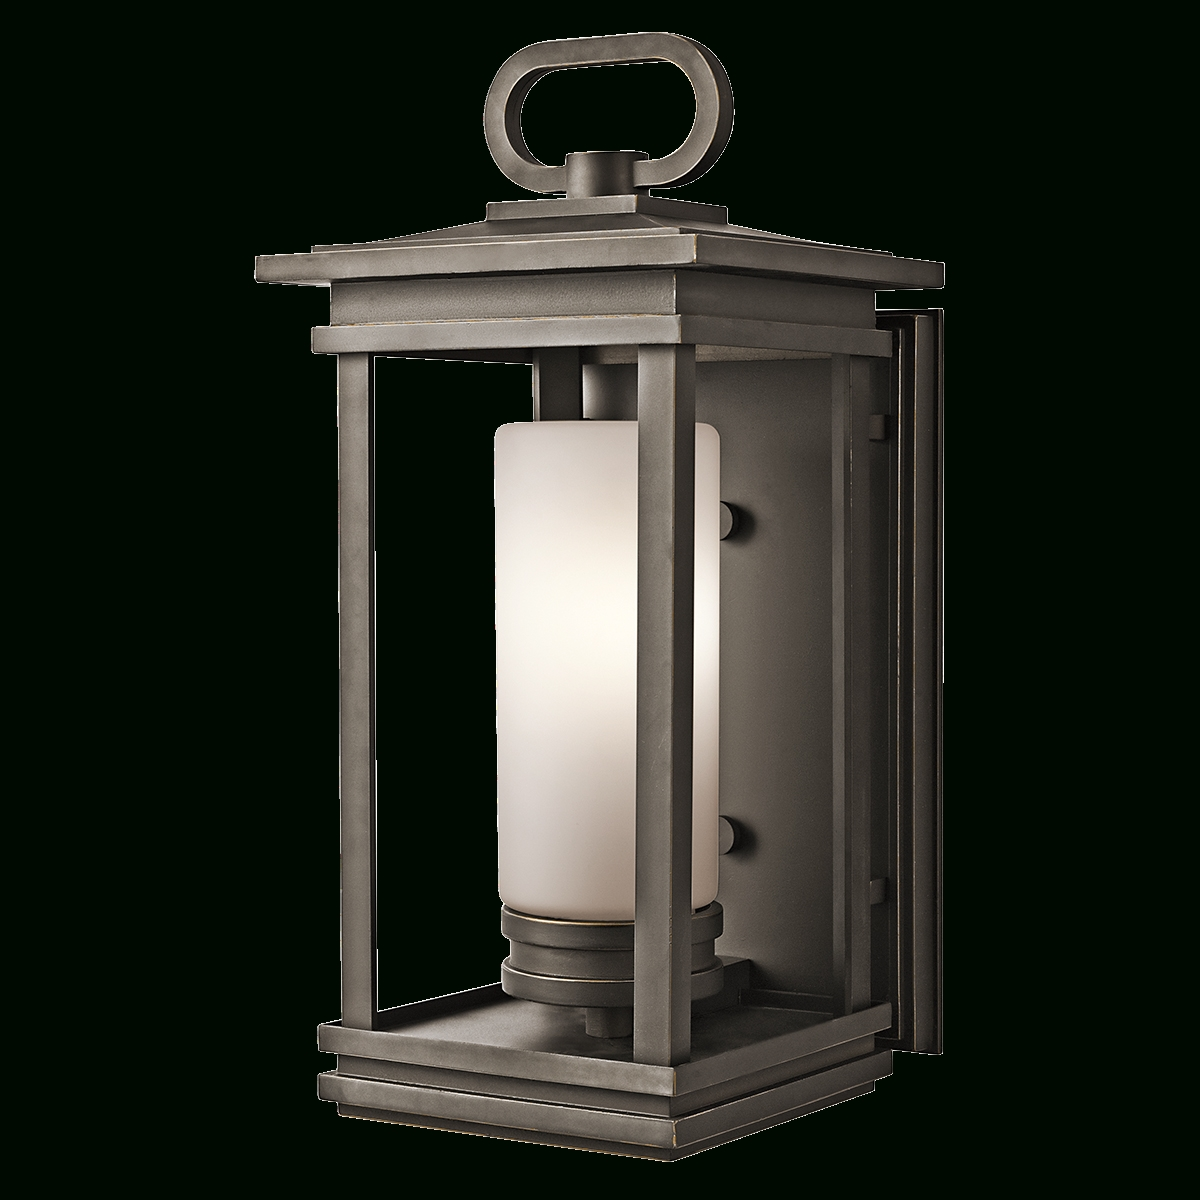 Kichler – South Hope Large Fluorescent Outdoor Lantern In Bronze Inside Famous Kichler Outdoor Lanterns (Gallery 10 of 20)